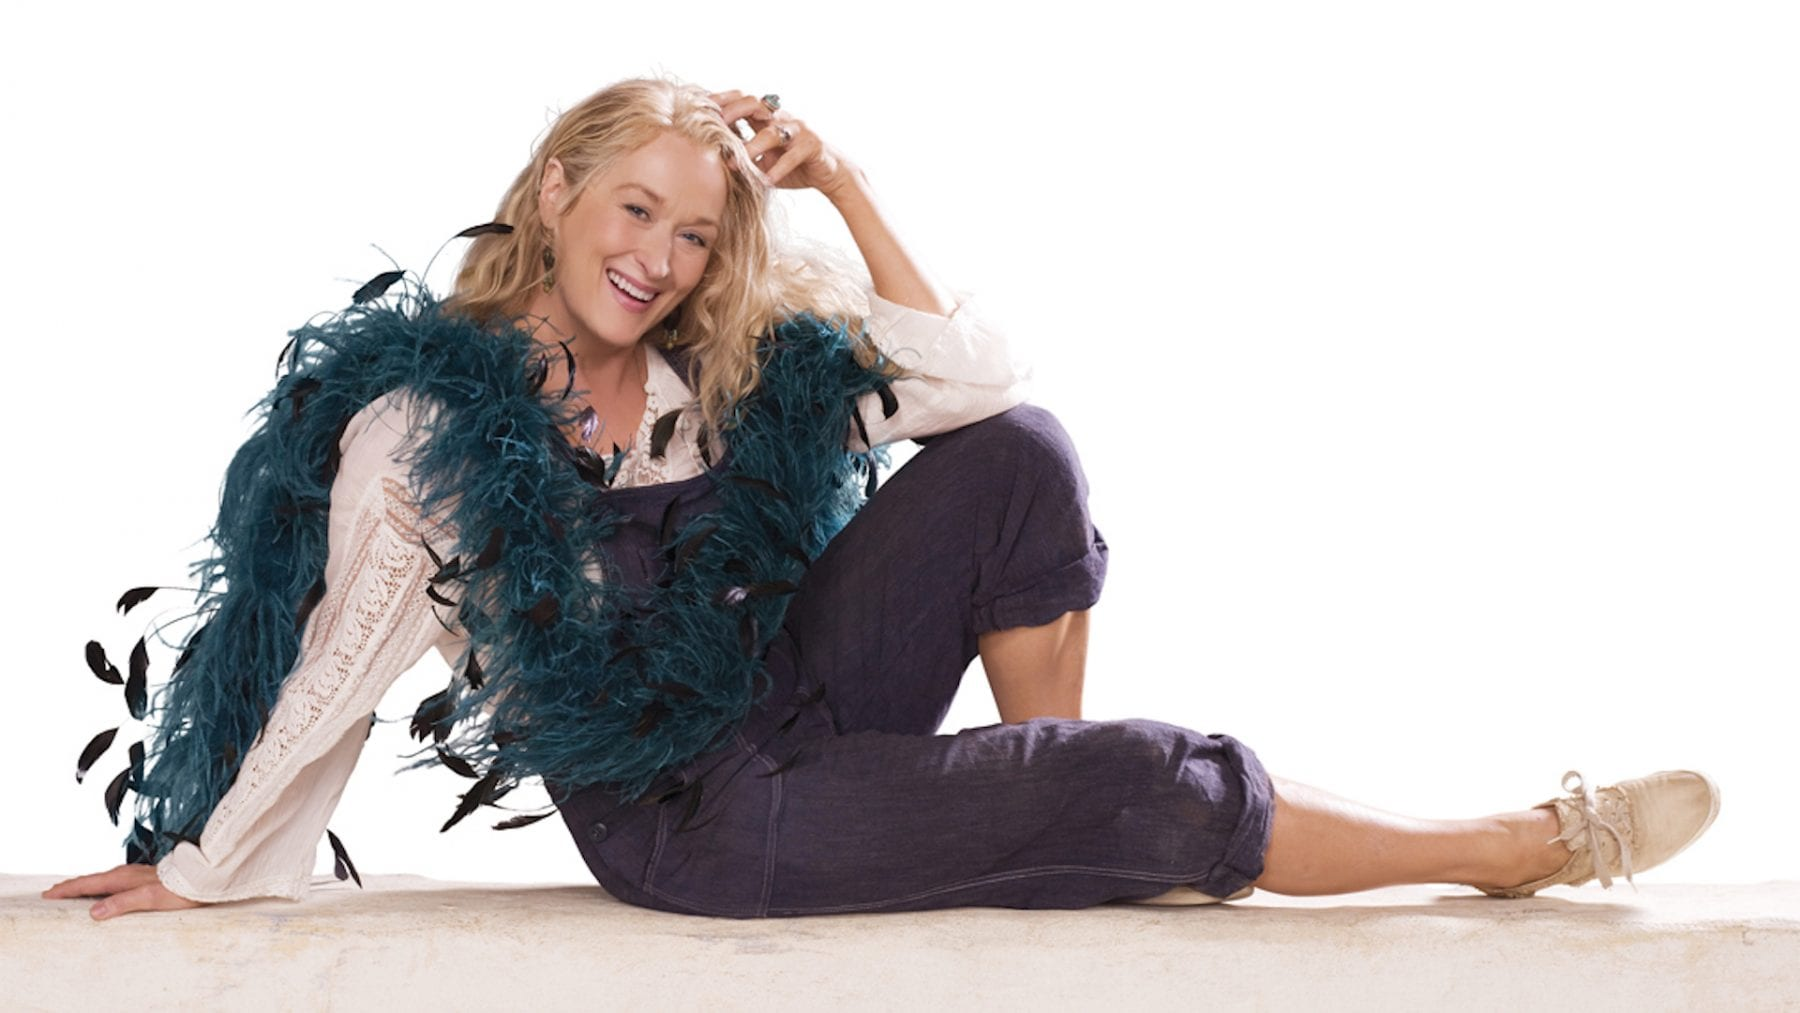 Meryl Streep as Donna Sheridan in Mamma Mia